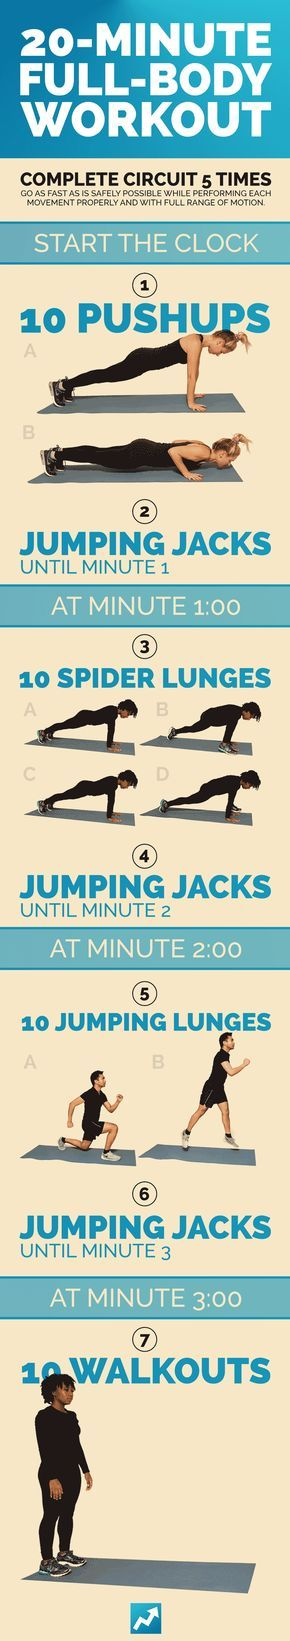 20 Minute Full-Body Workout